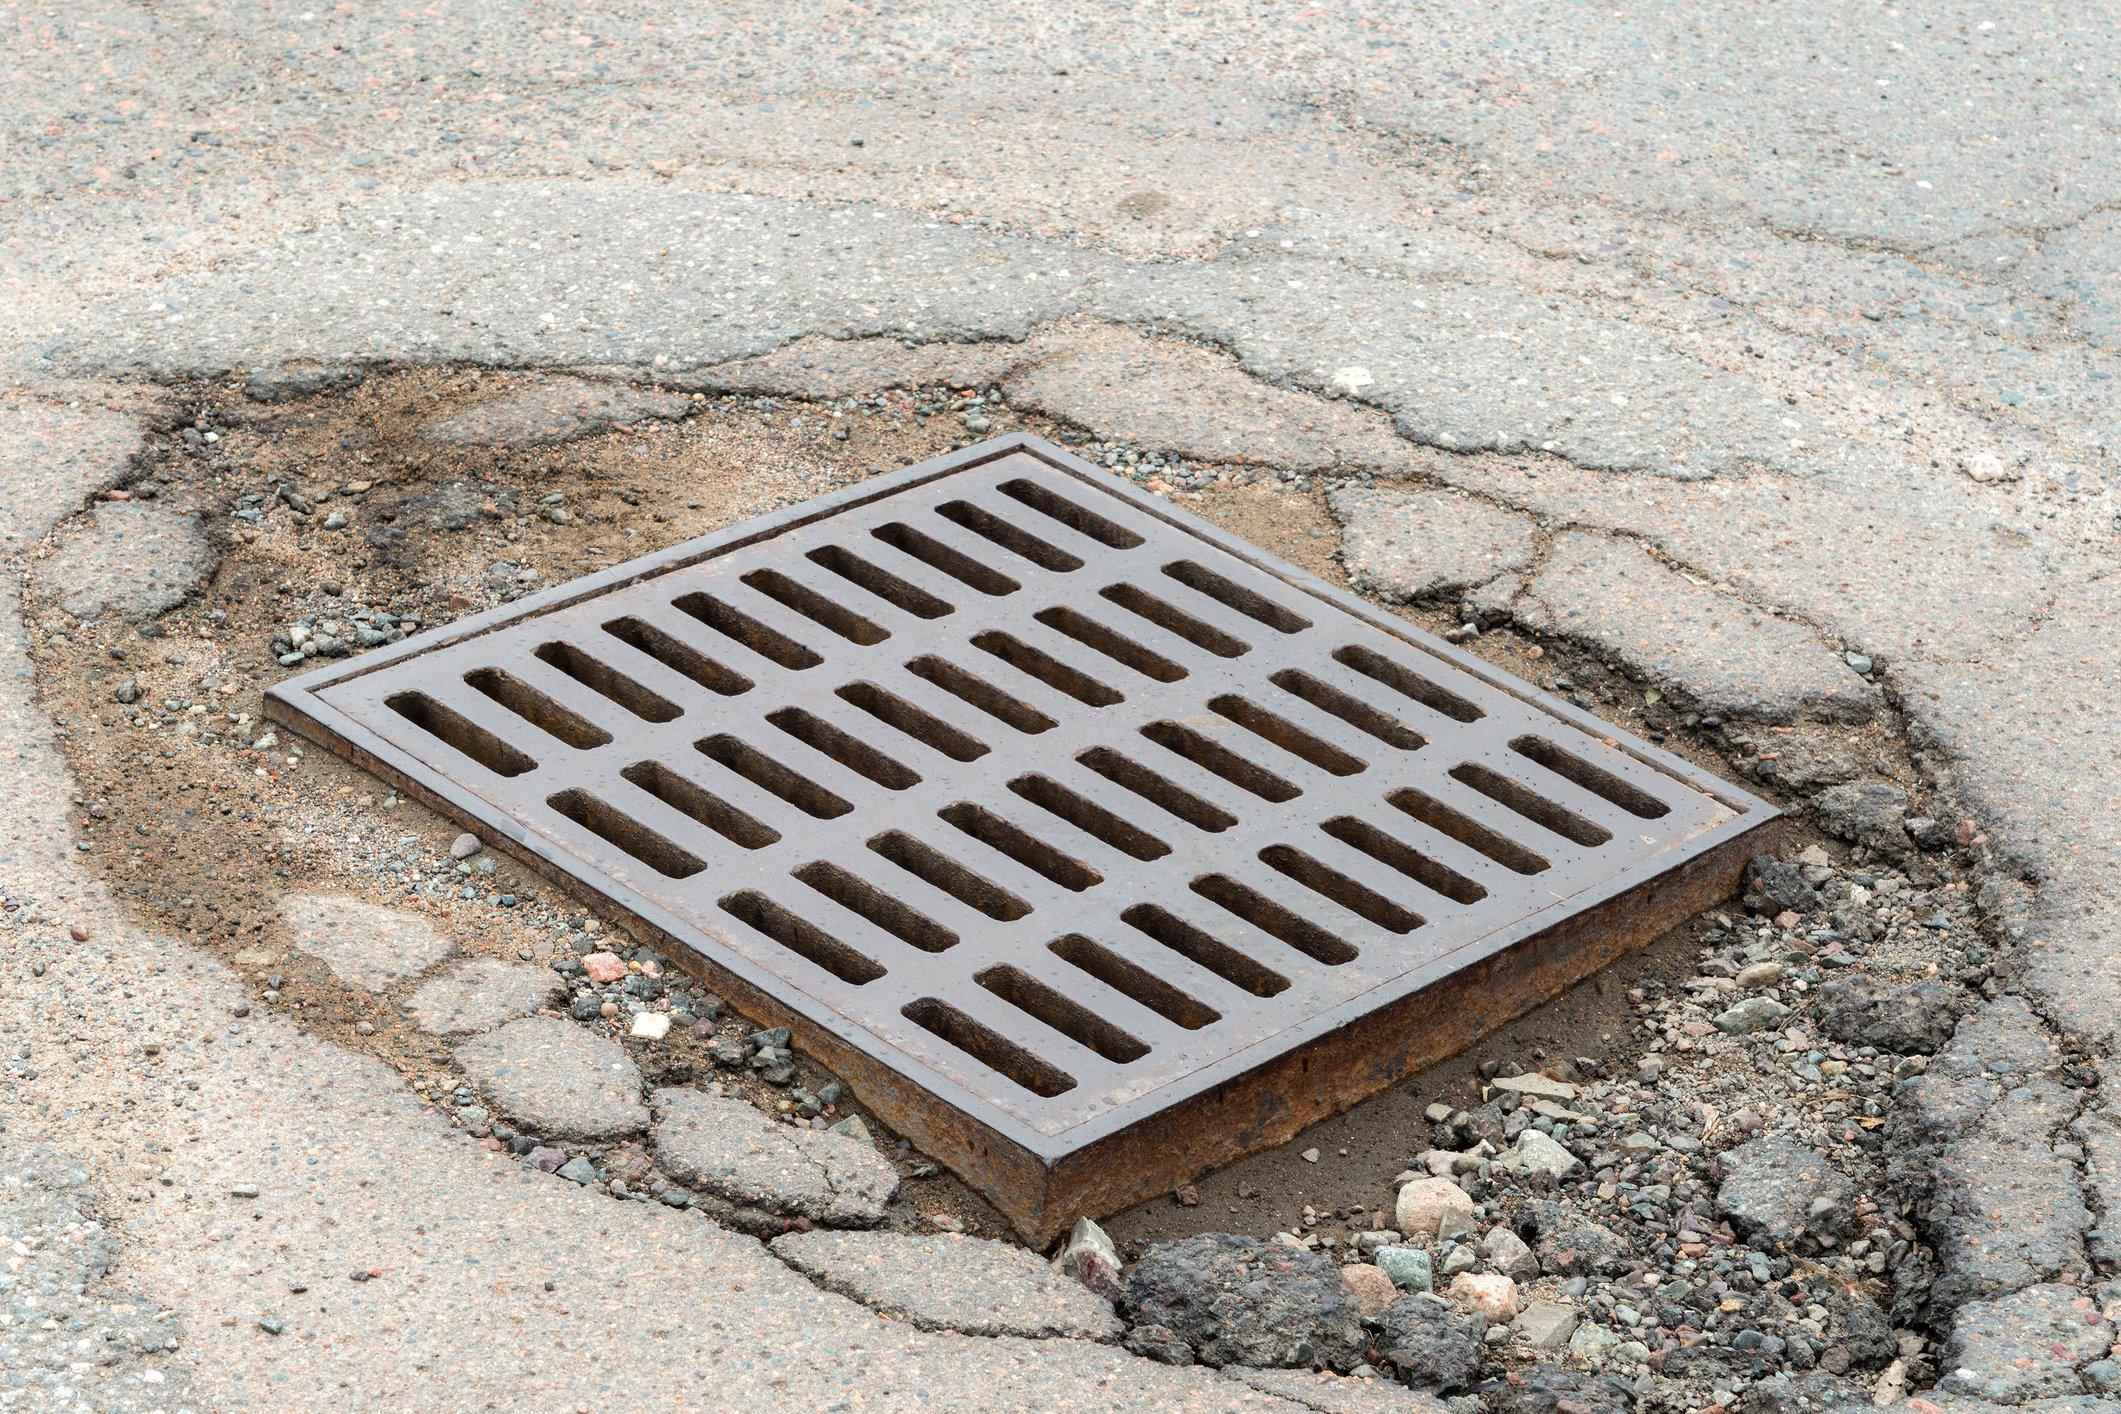 grate for drainage system